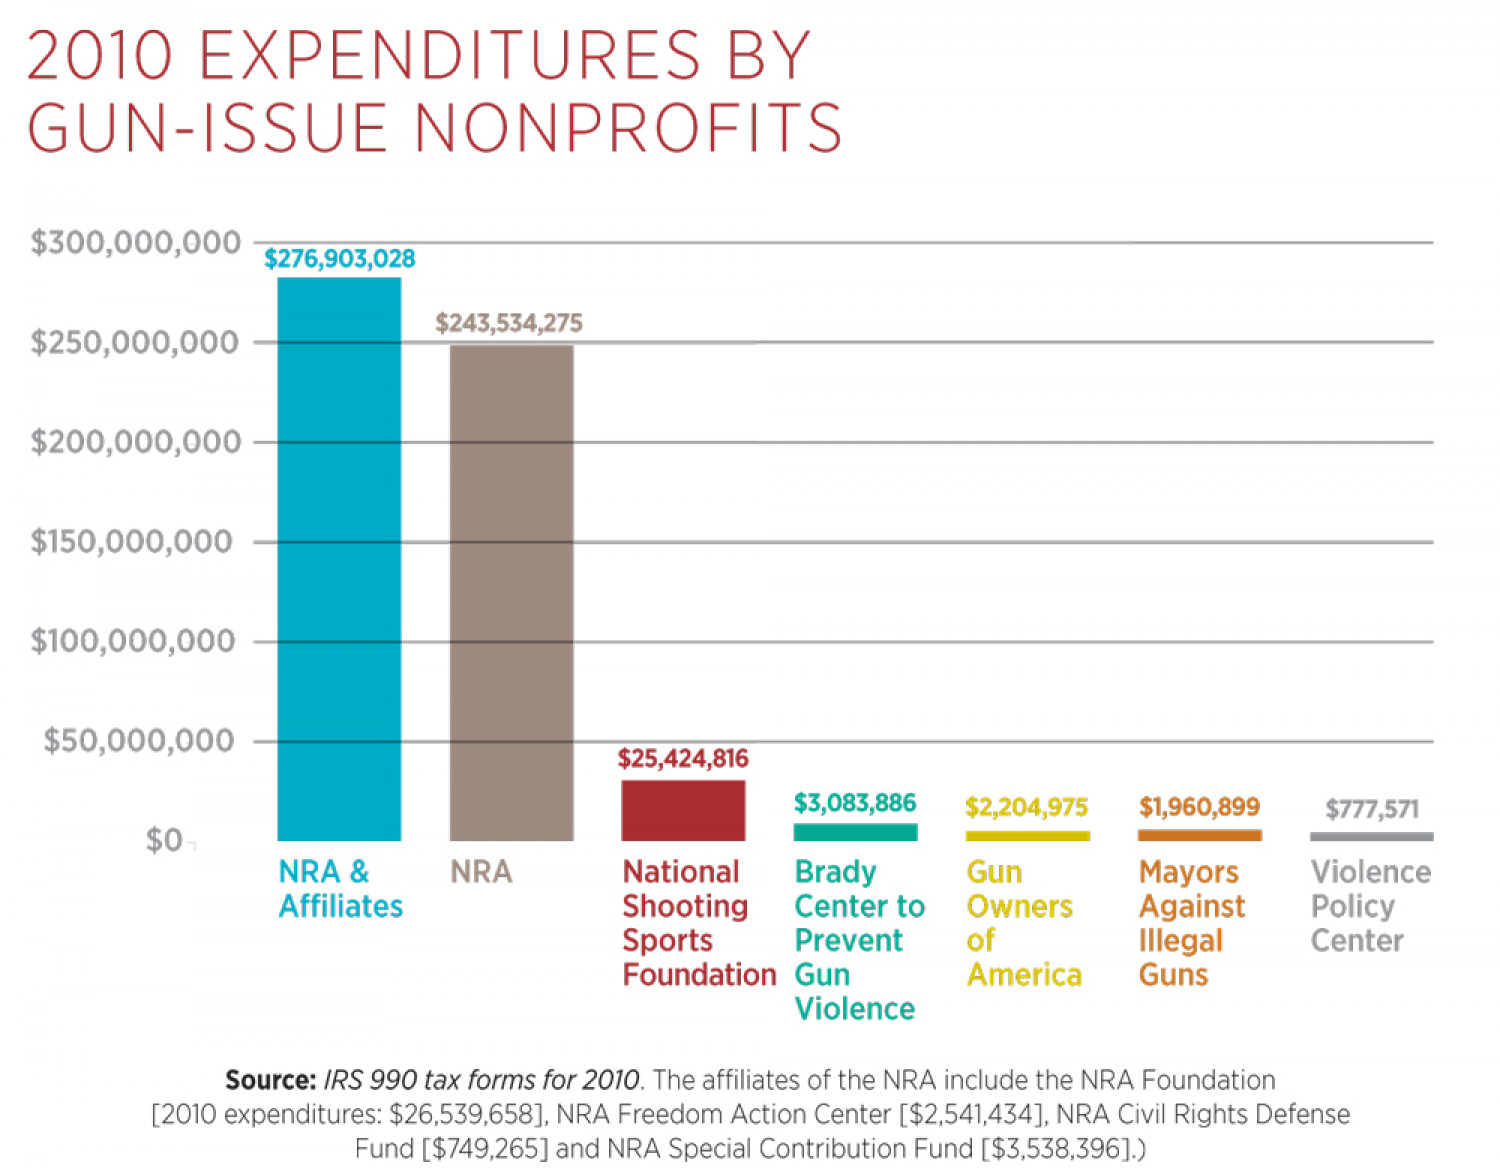 2010 Expenditures by Gun-Issue Nonprofits  Infographic